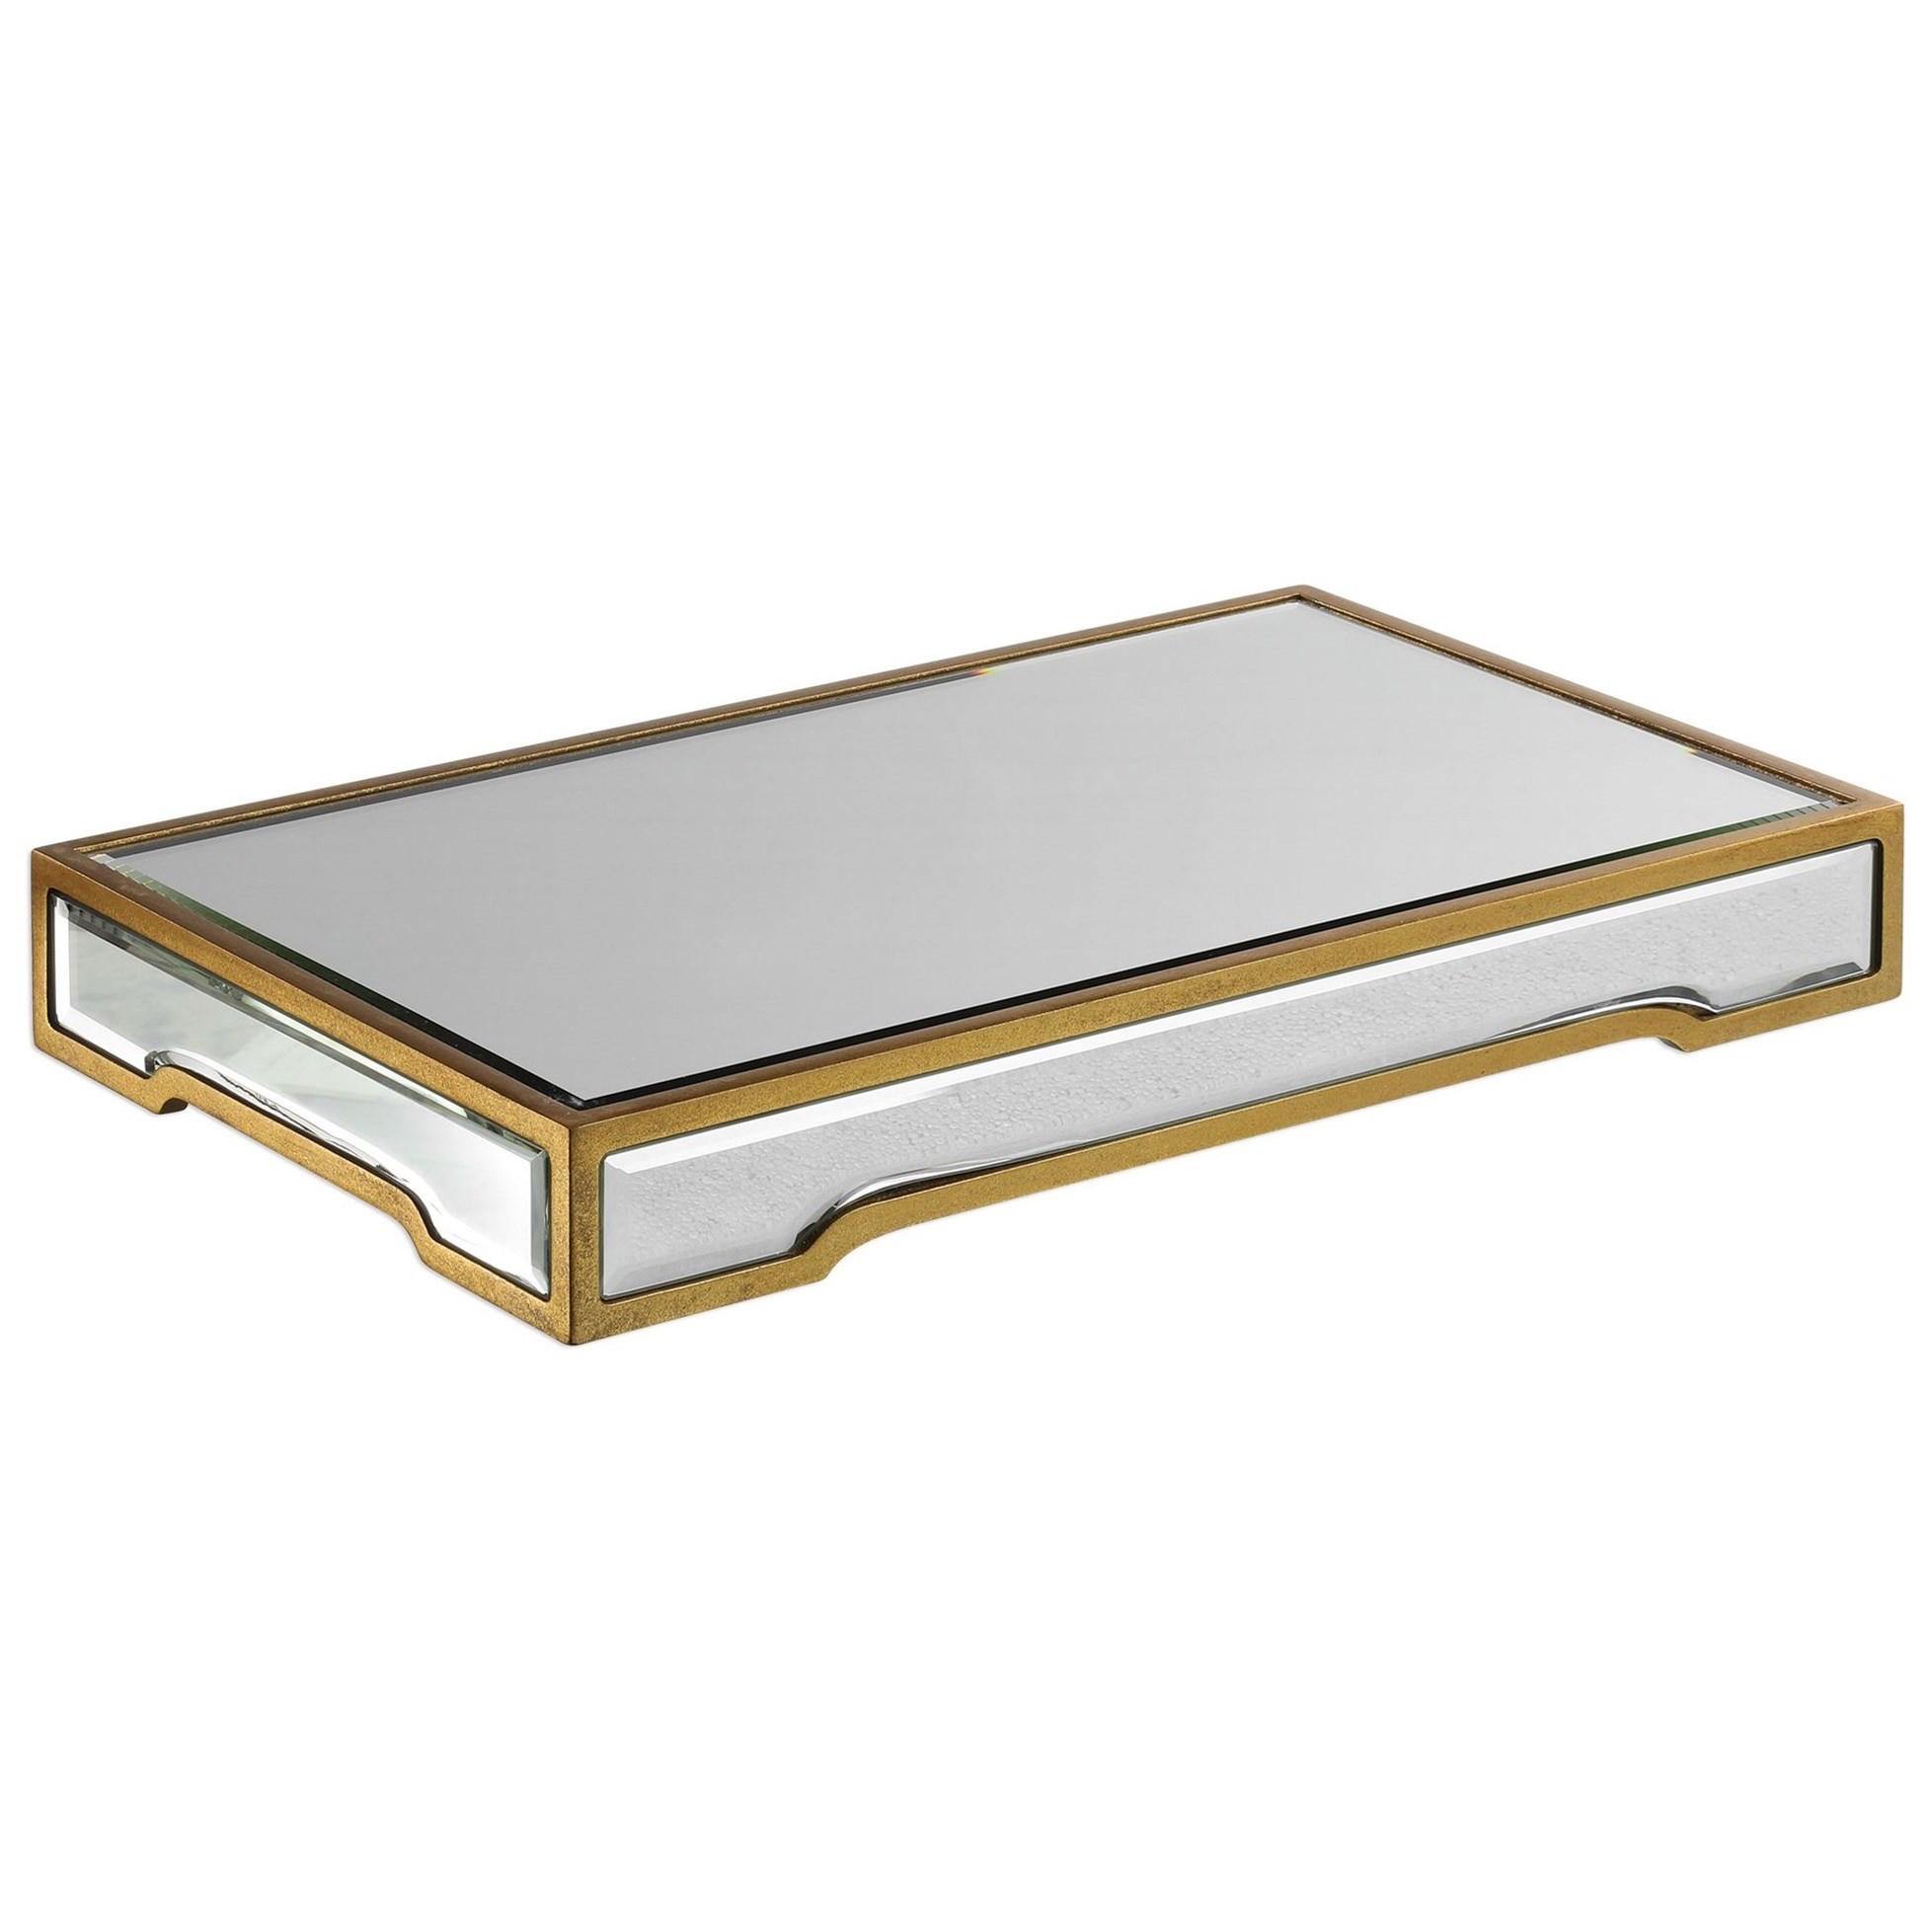 Accessories Carly Mirrored Tray by Uttermost at Dunk & Bright Furniture